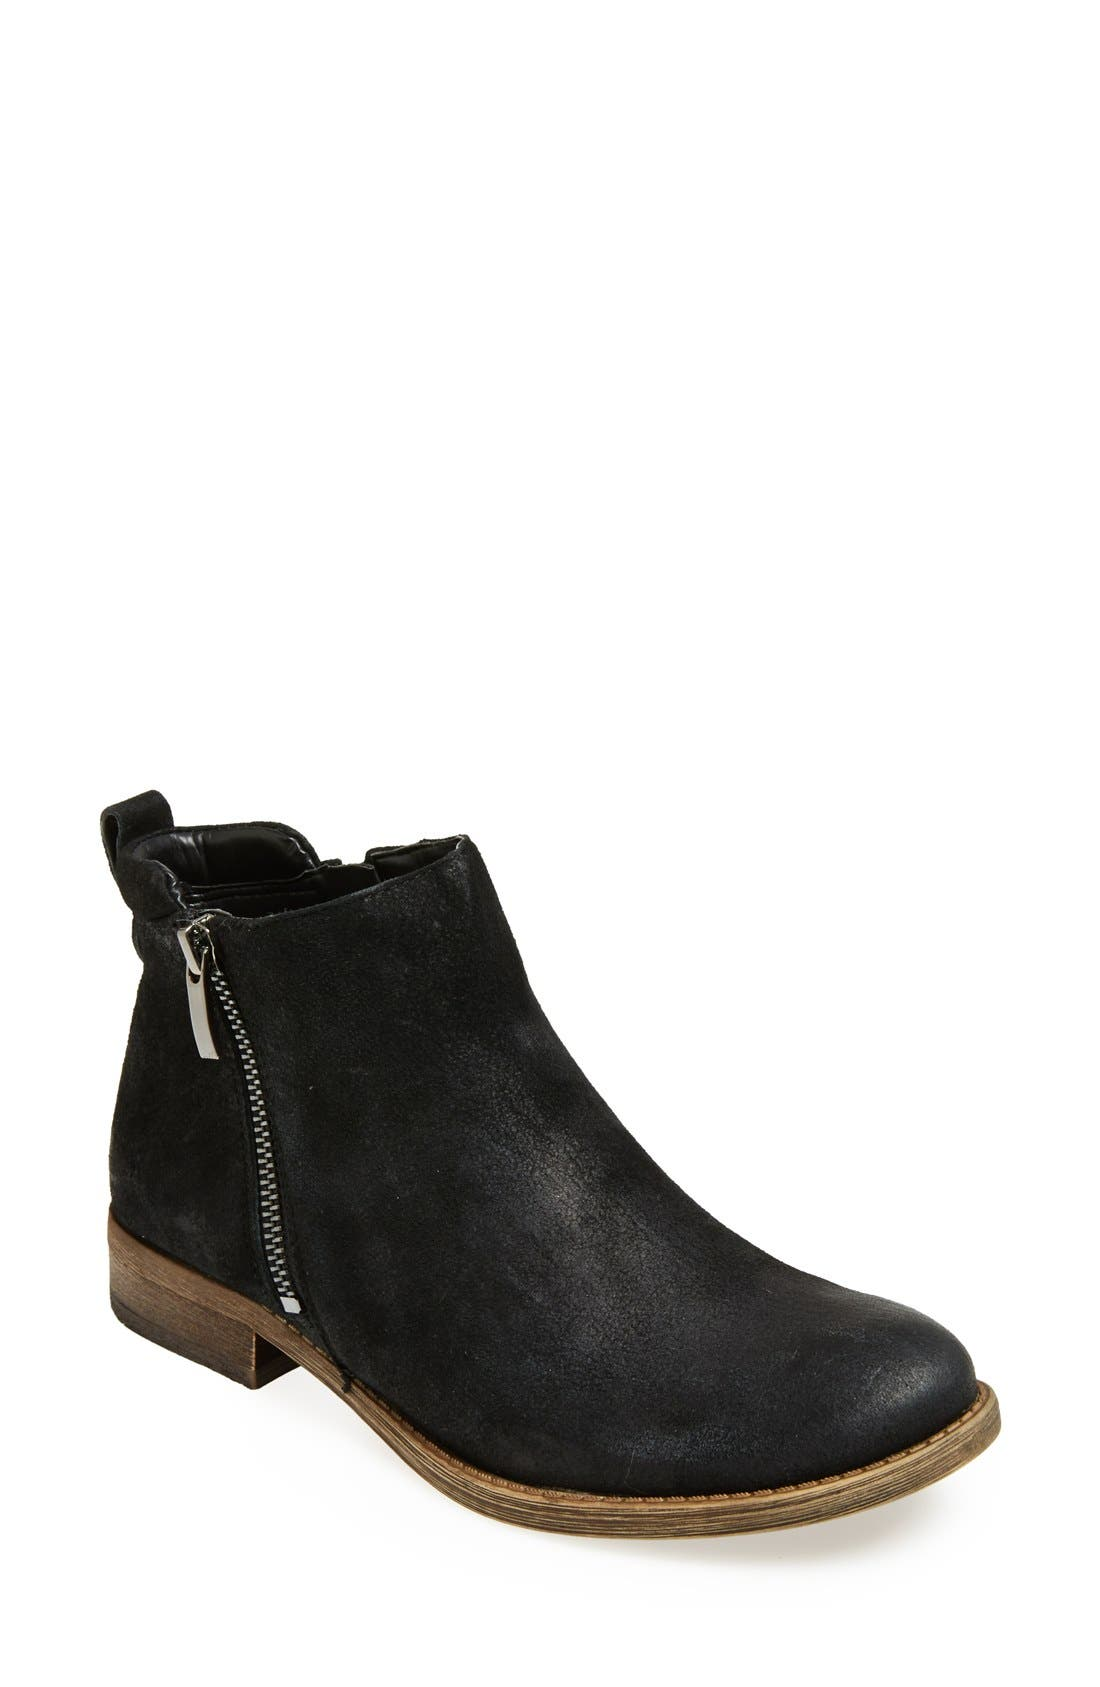 Alternate Image 1 Selected - Franco Sarto 'Haverly' Bootie (Women)